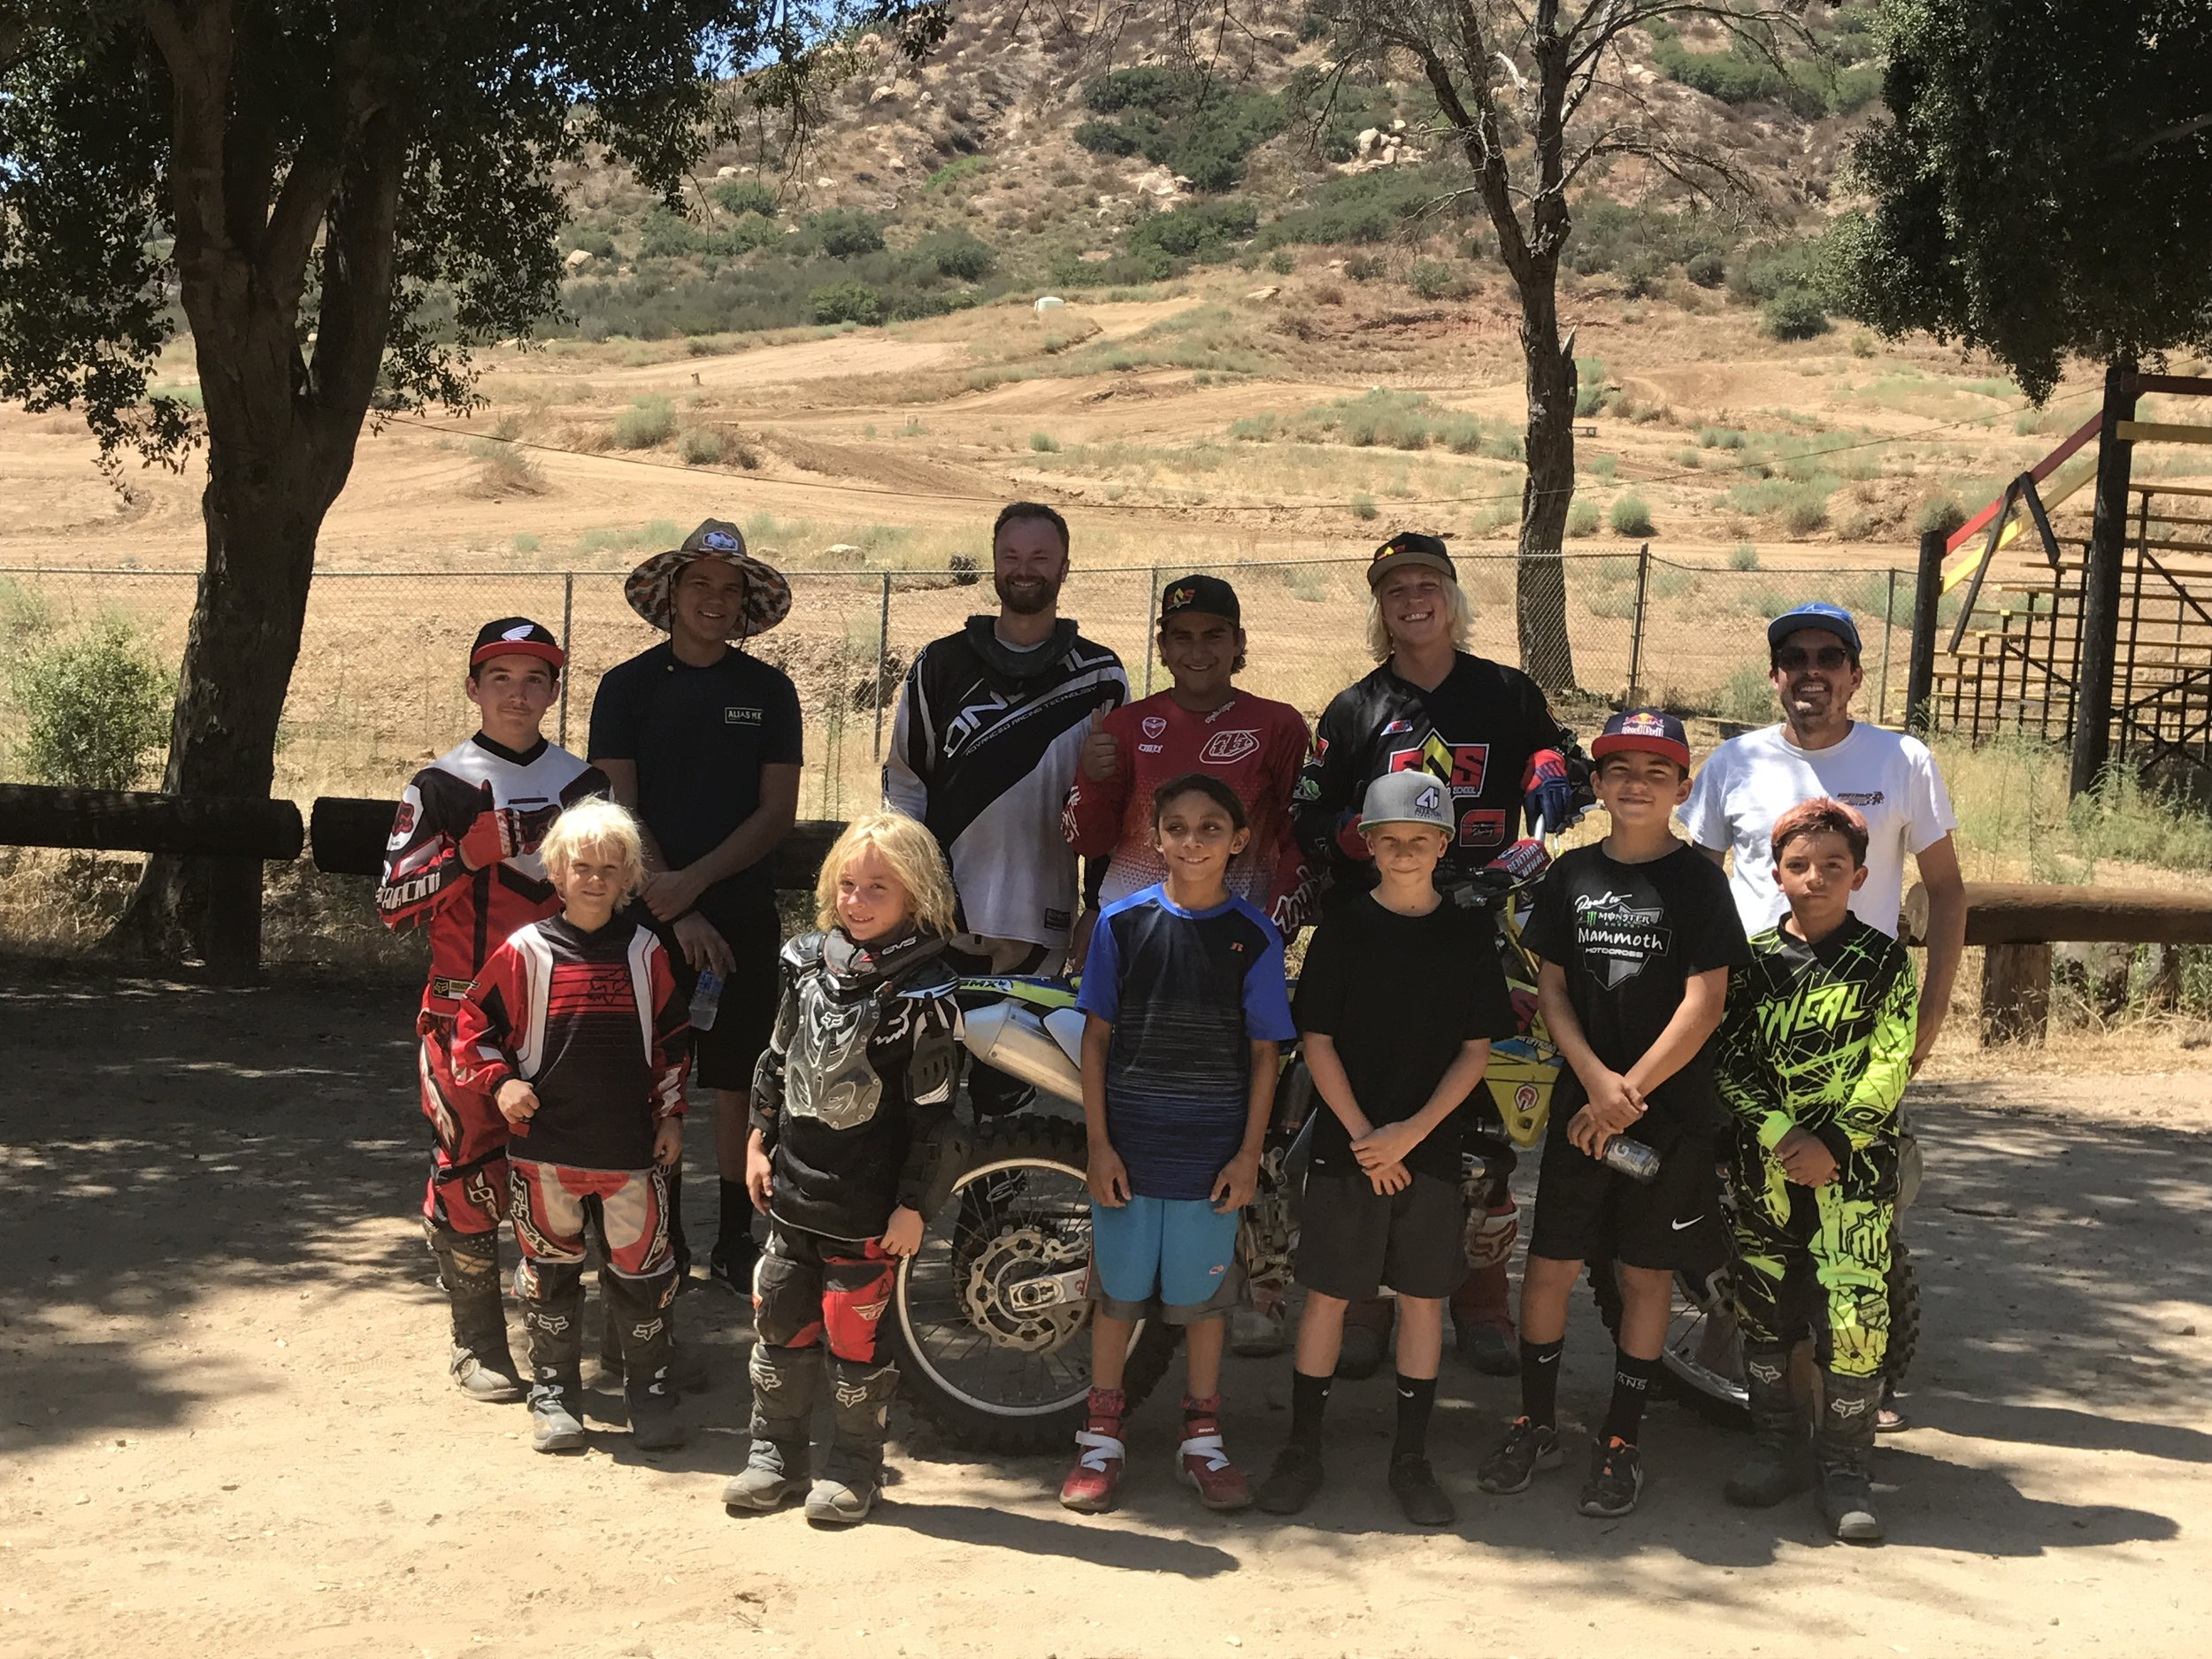 Motocross training camps at your home track